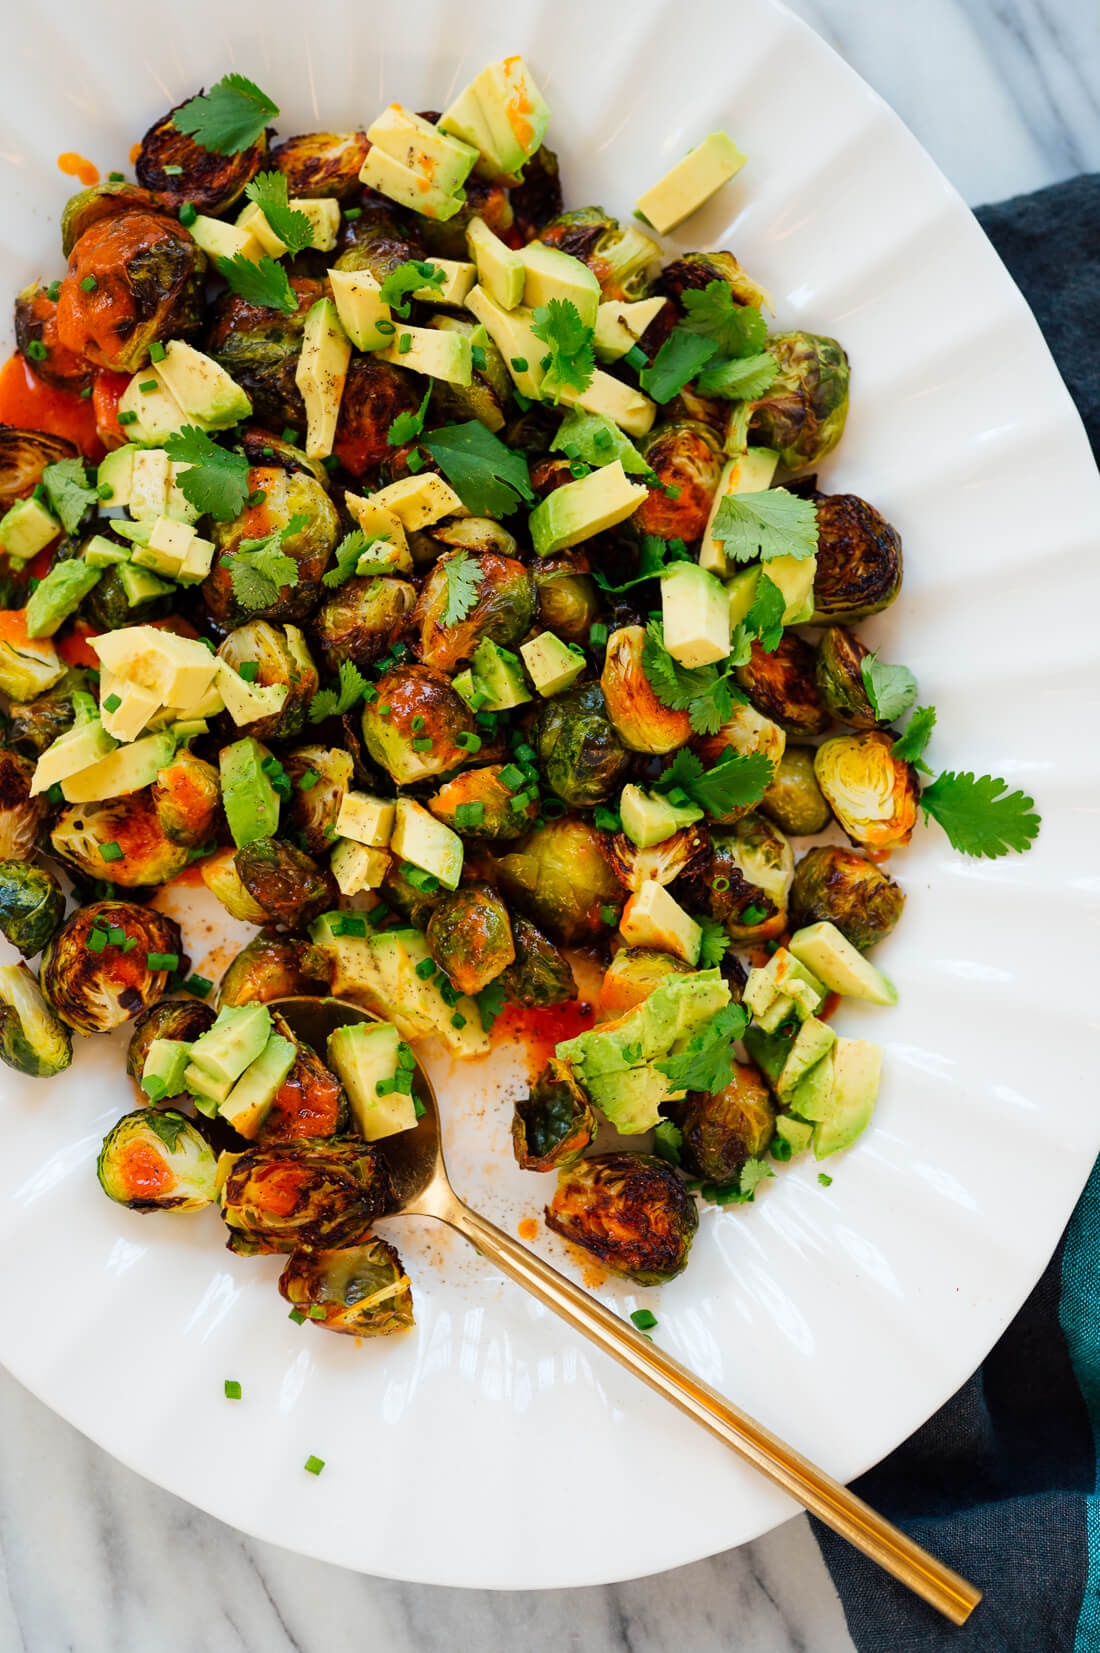 Buffalo Brussels sprouts appetizer recipe